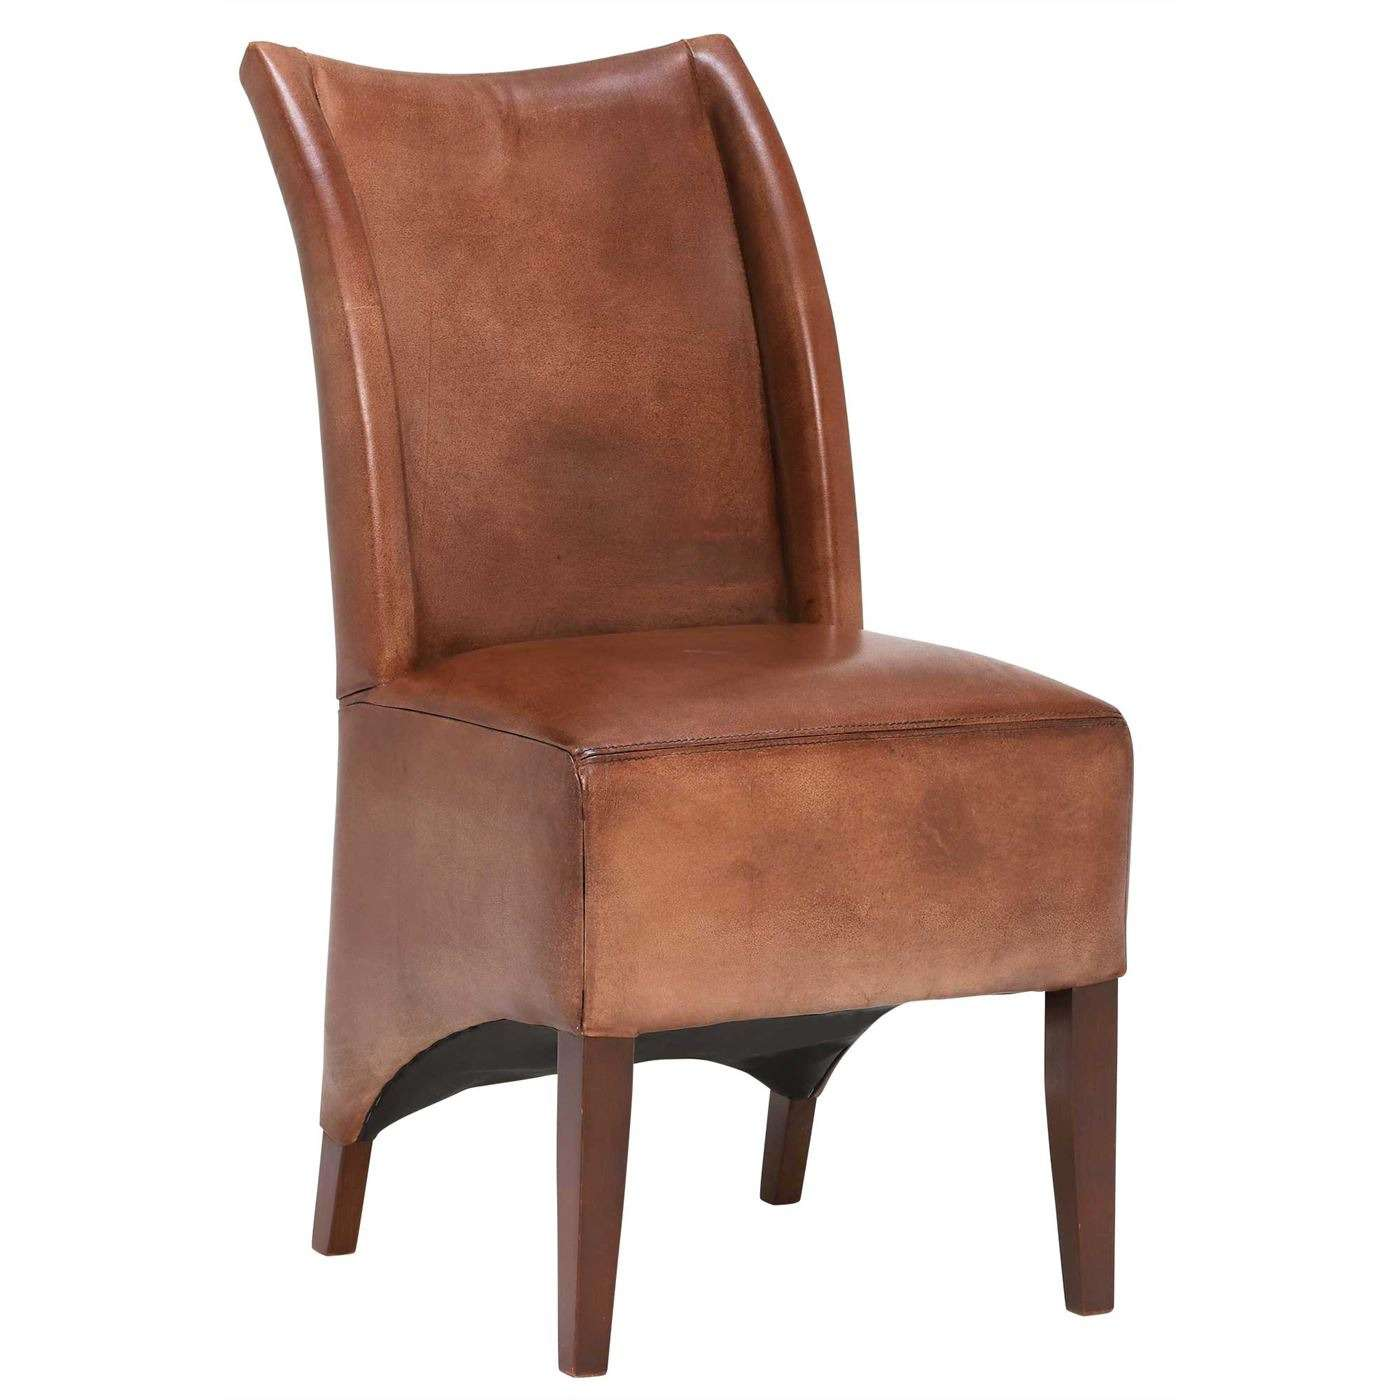 Blythe Vintage Leather Chair, Brown